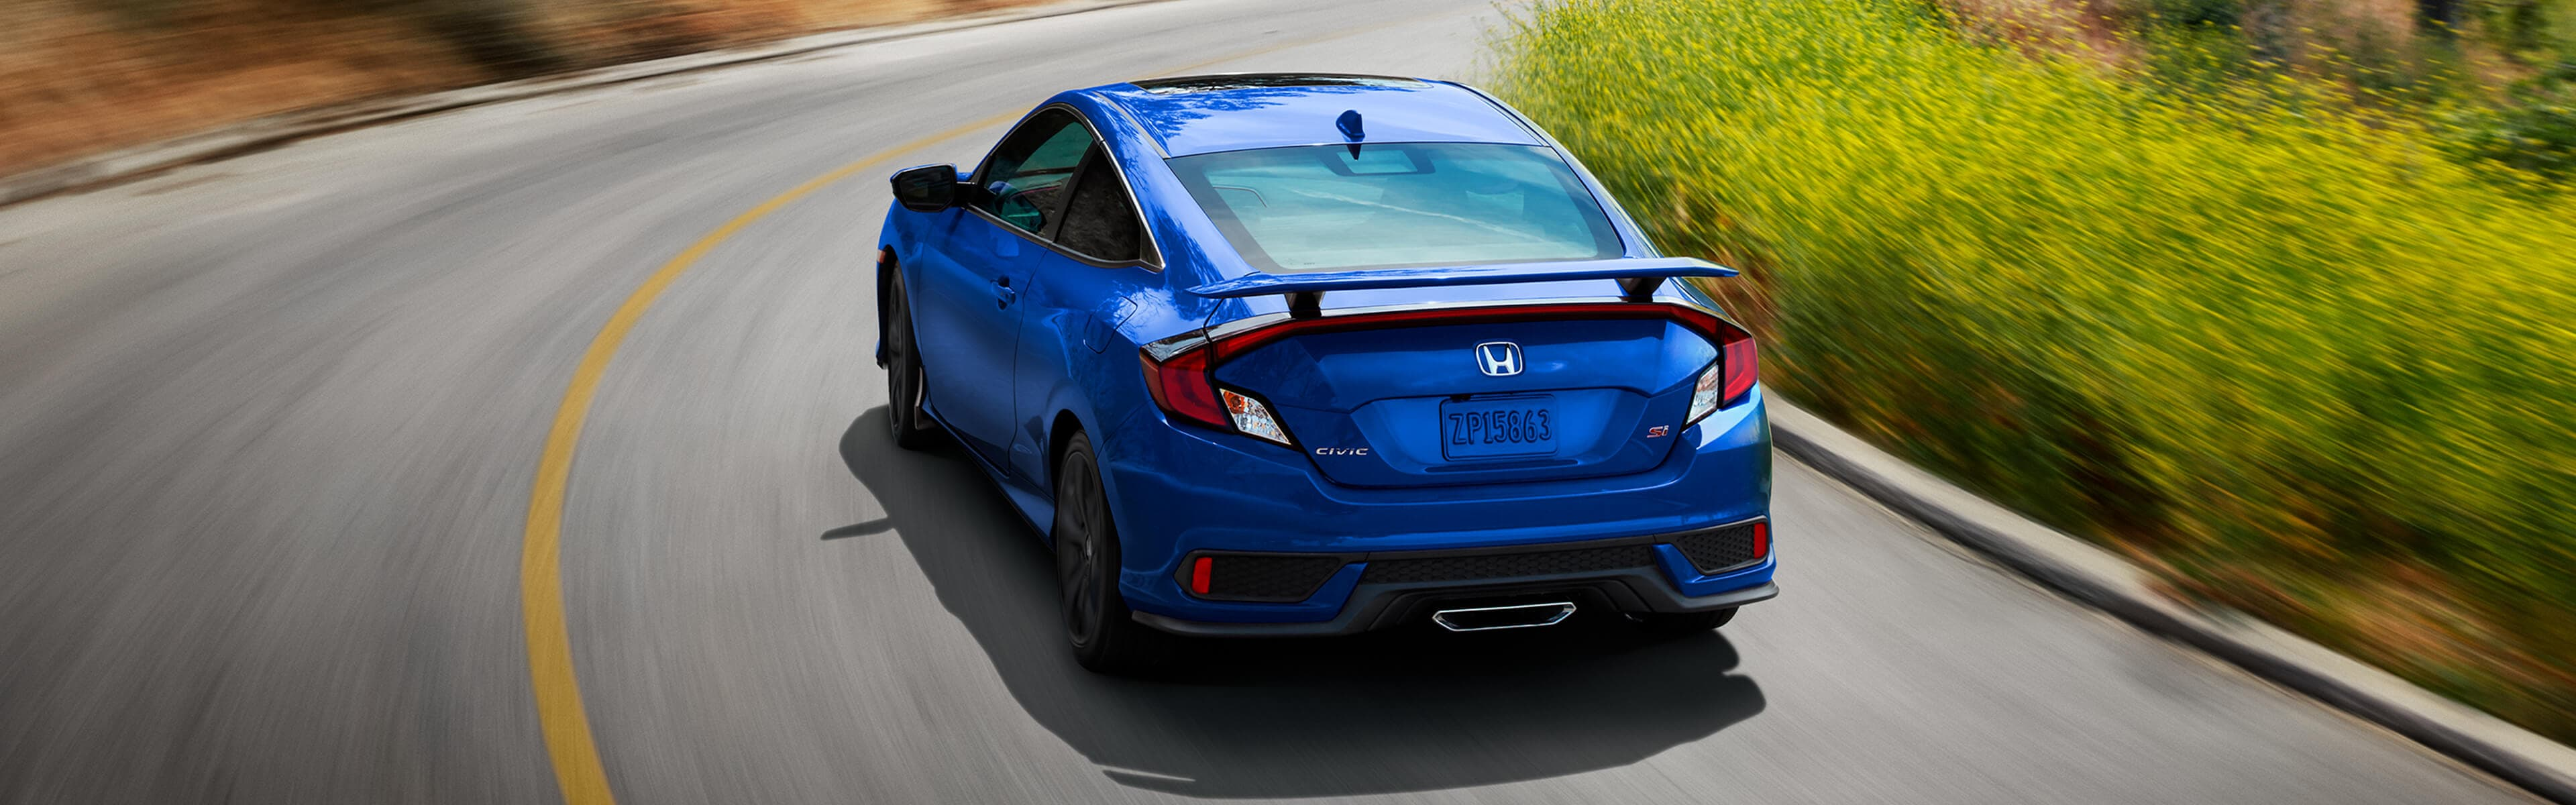 2018 Civic Coupe rear exterior